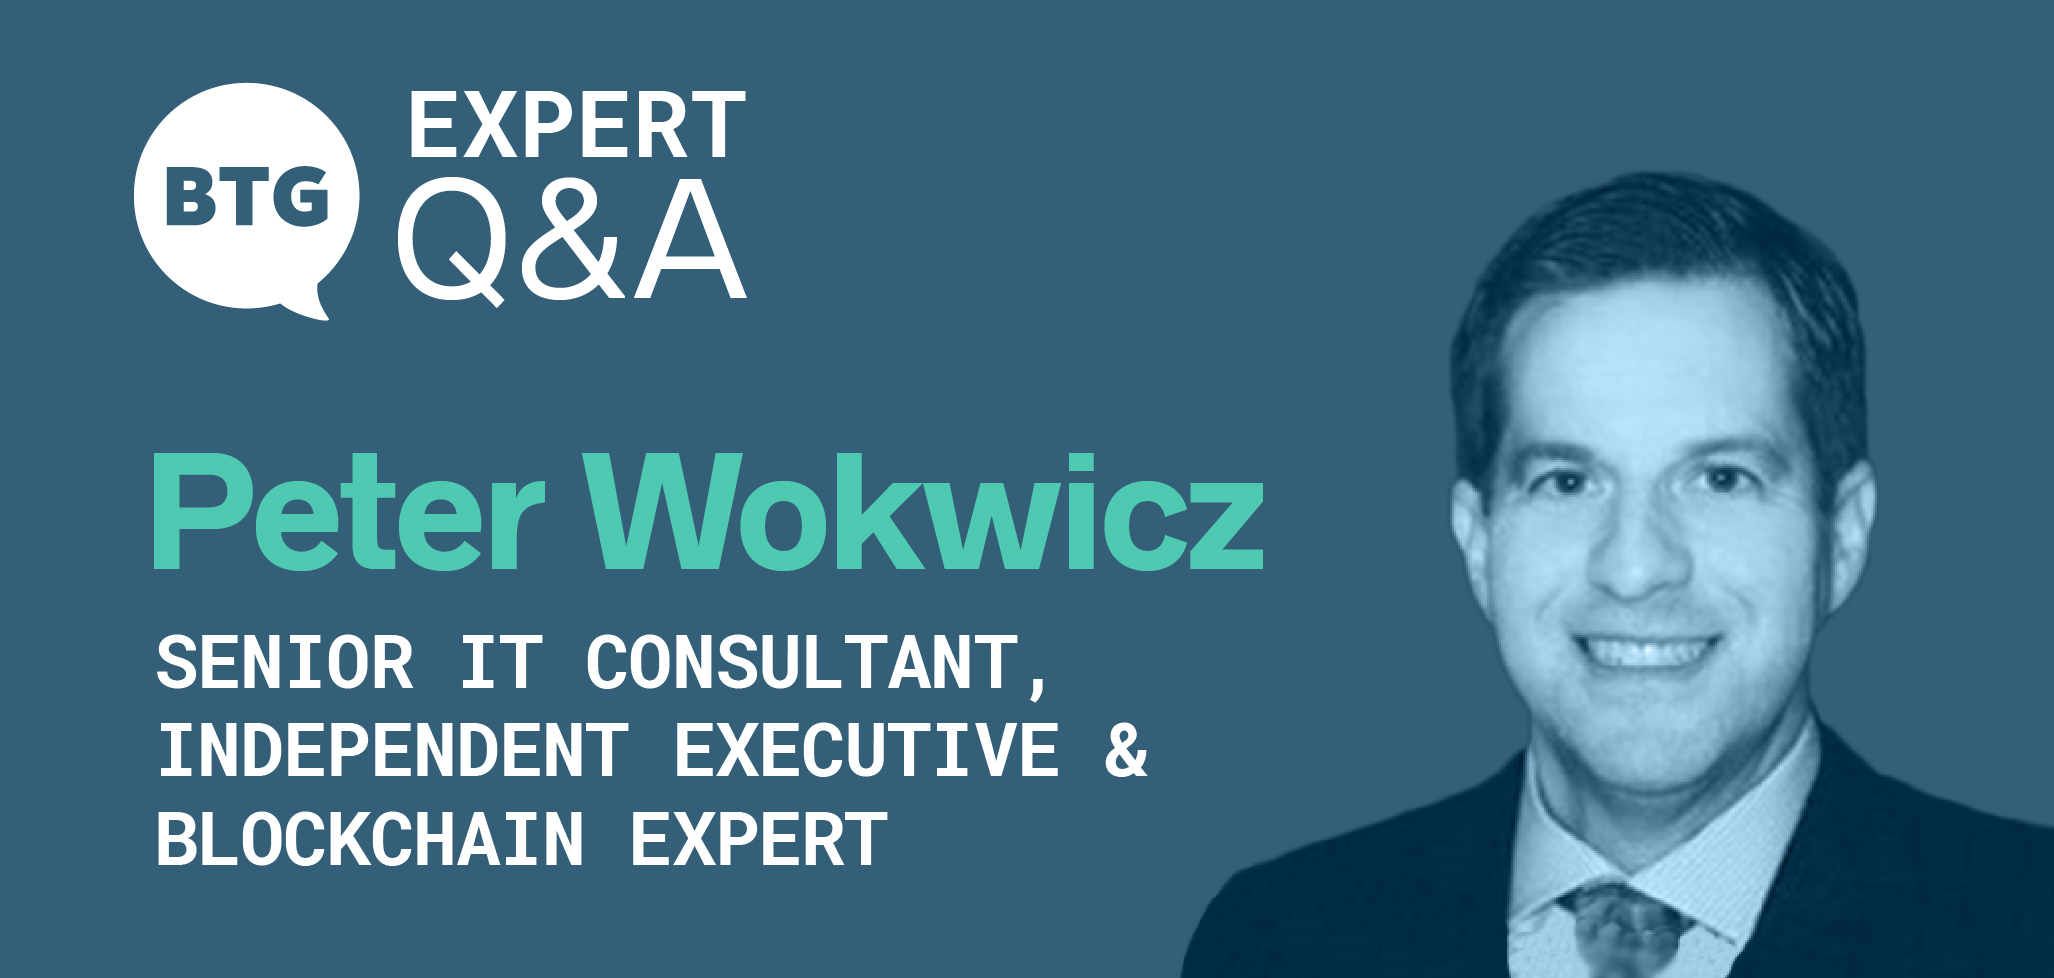 The State of Enterprise Blockchain and Decentralized Finance: Headshot, name, and title of Peter Wokwicz, senior IT consultant, executive, and blockchain expert